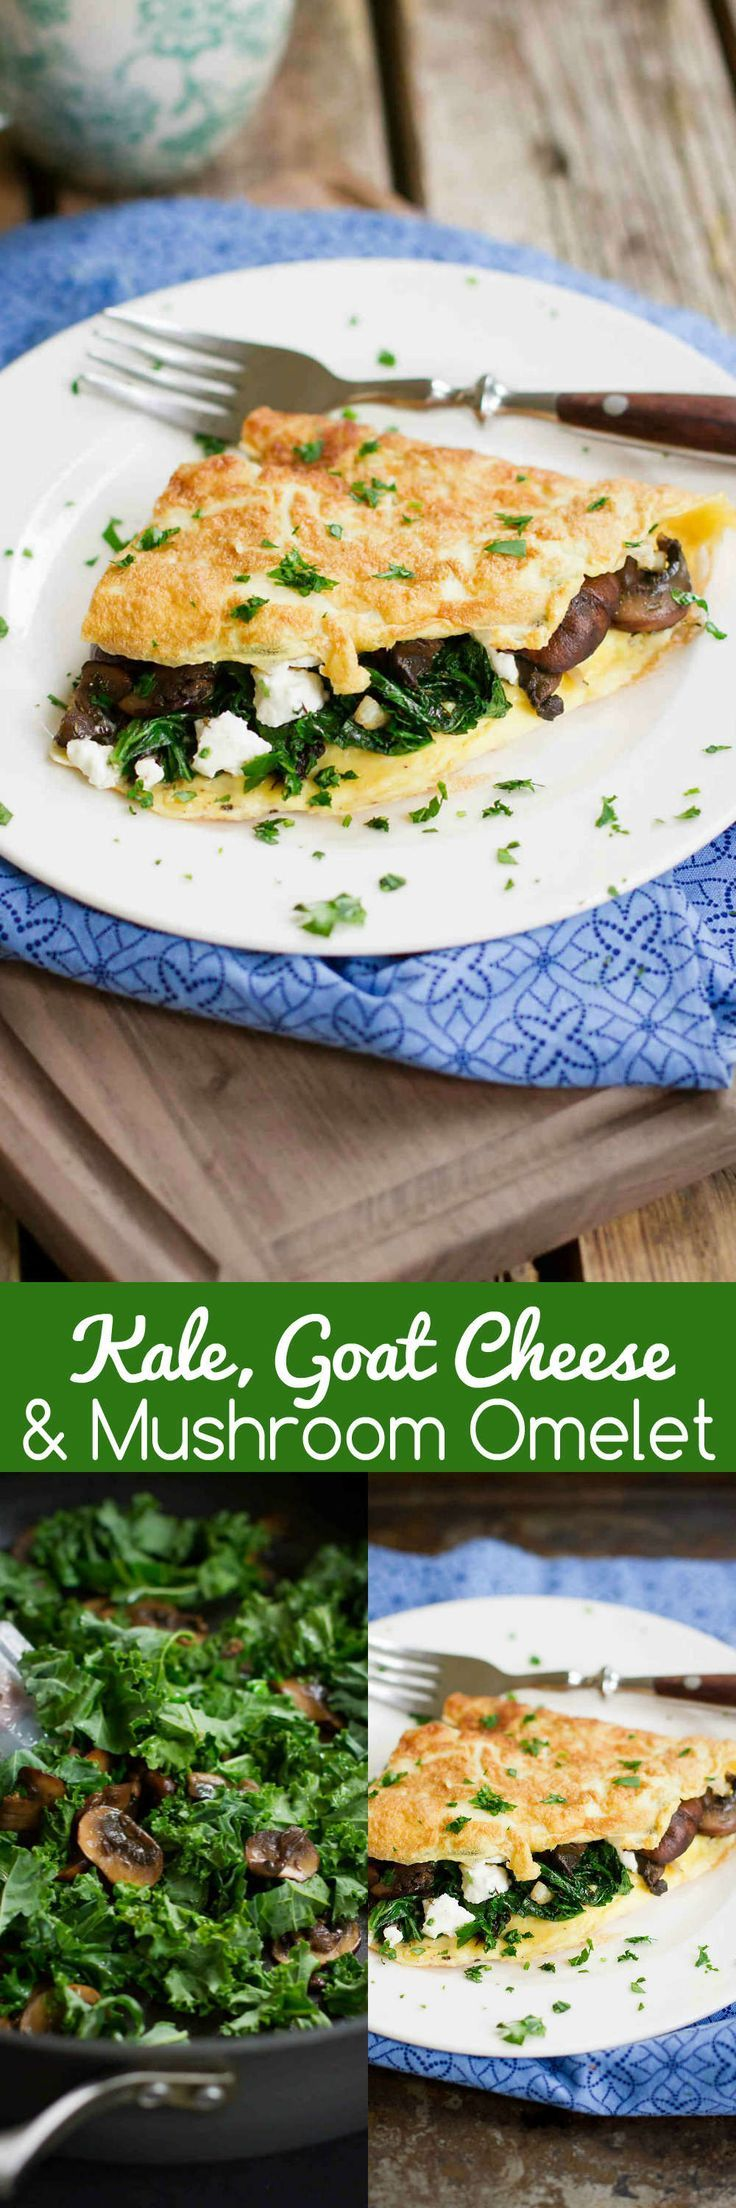 Kale, Goat Cheese and Mushroom Omelet…The flavors in this breakfast recipe will make you crave it over and over again! Plus, it's full of nutrients. 219 calories and 5 Weight Watchers SmartPoints #VegItUp